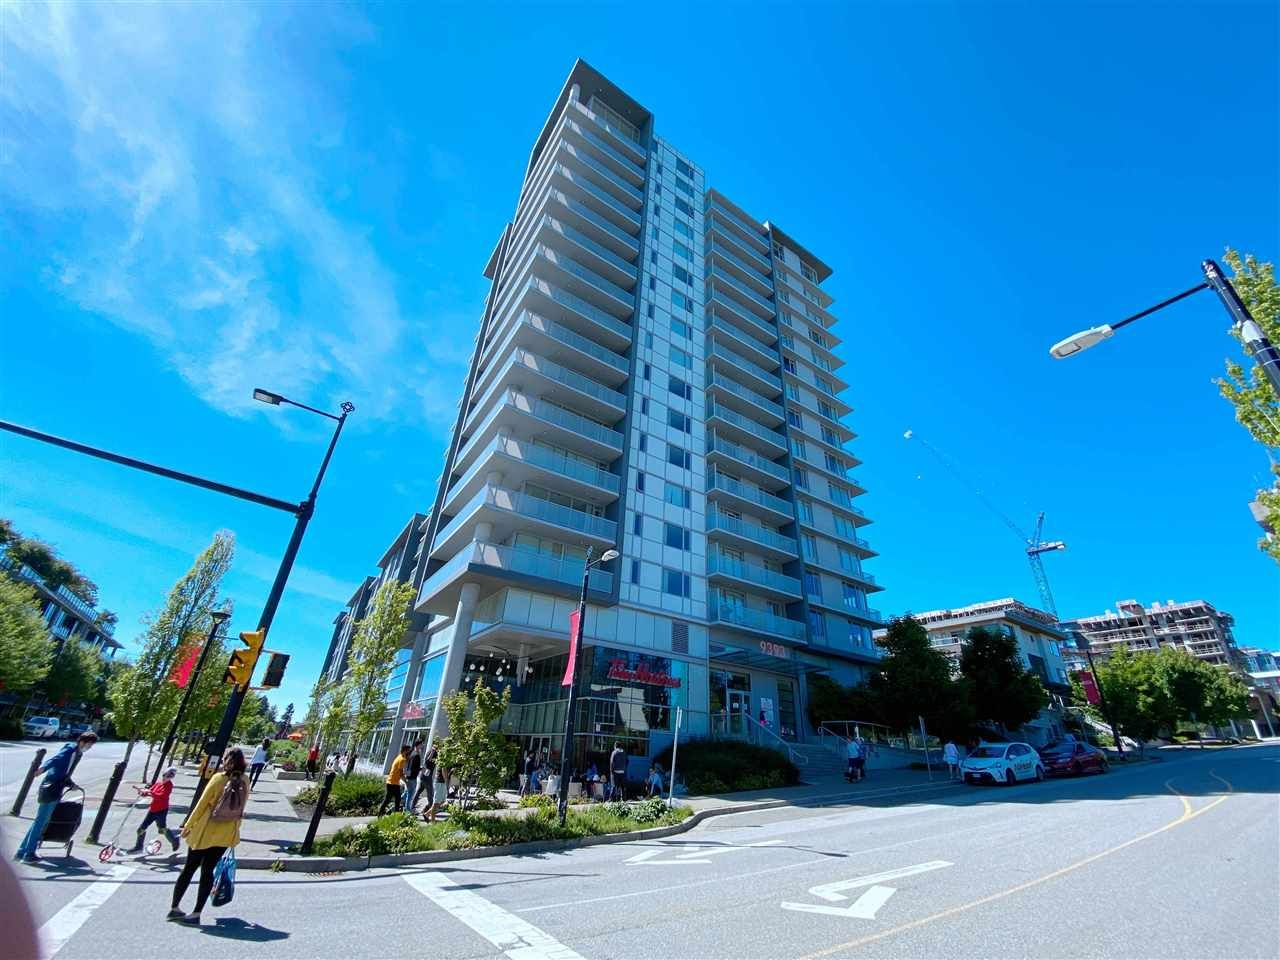 Main Photo: 1203 9393 TOWER Street in Burnaby: Simon Fraser Univer. Condo for sale (Burnaby North)  : MLS®# R2587315